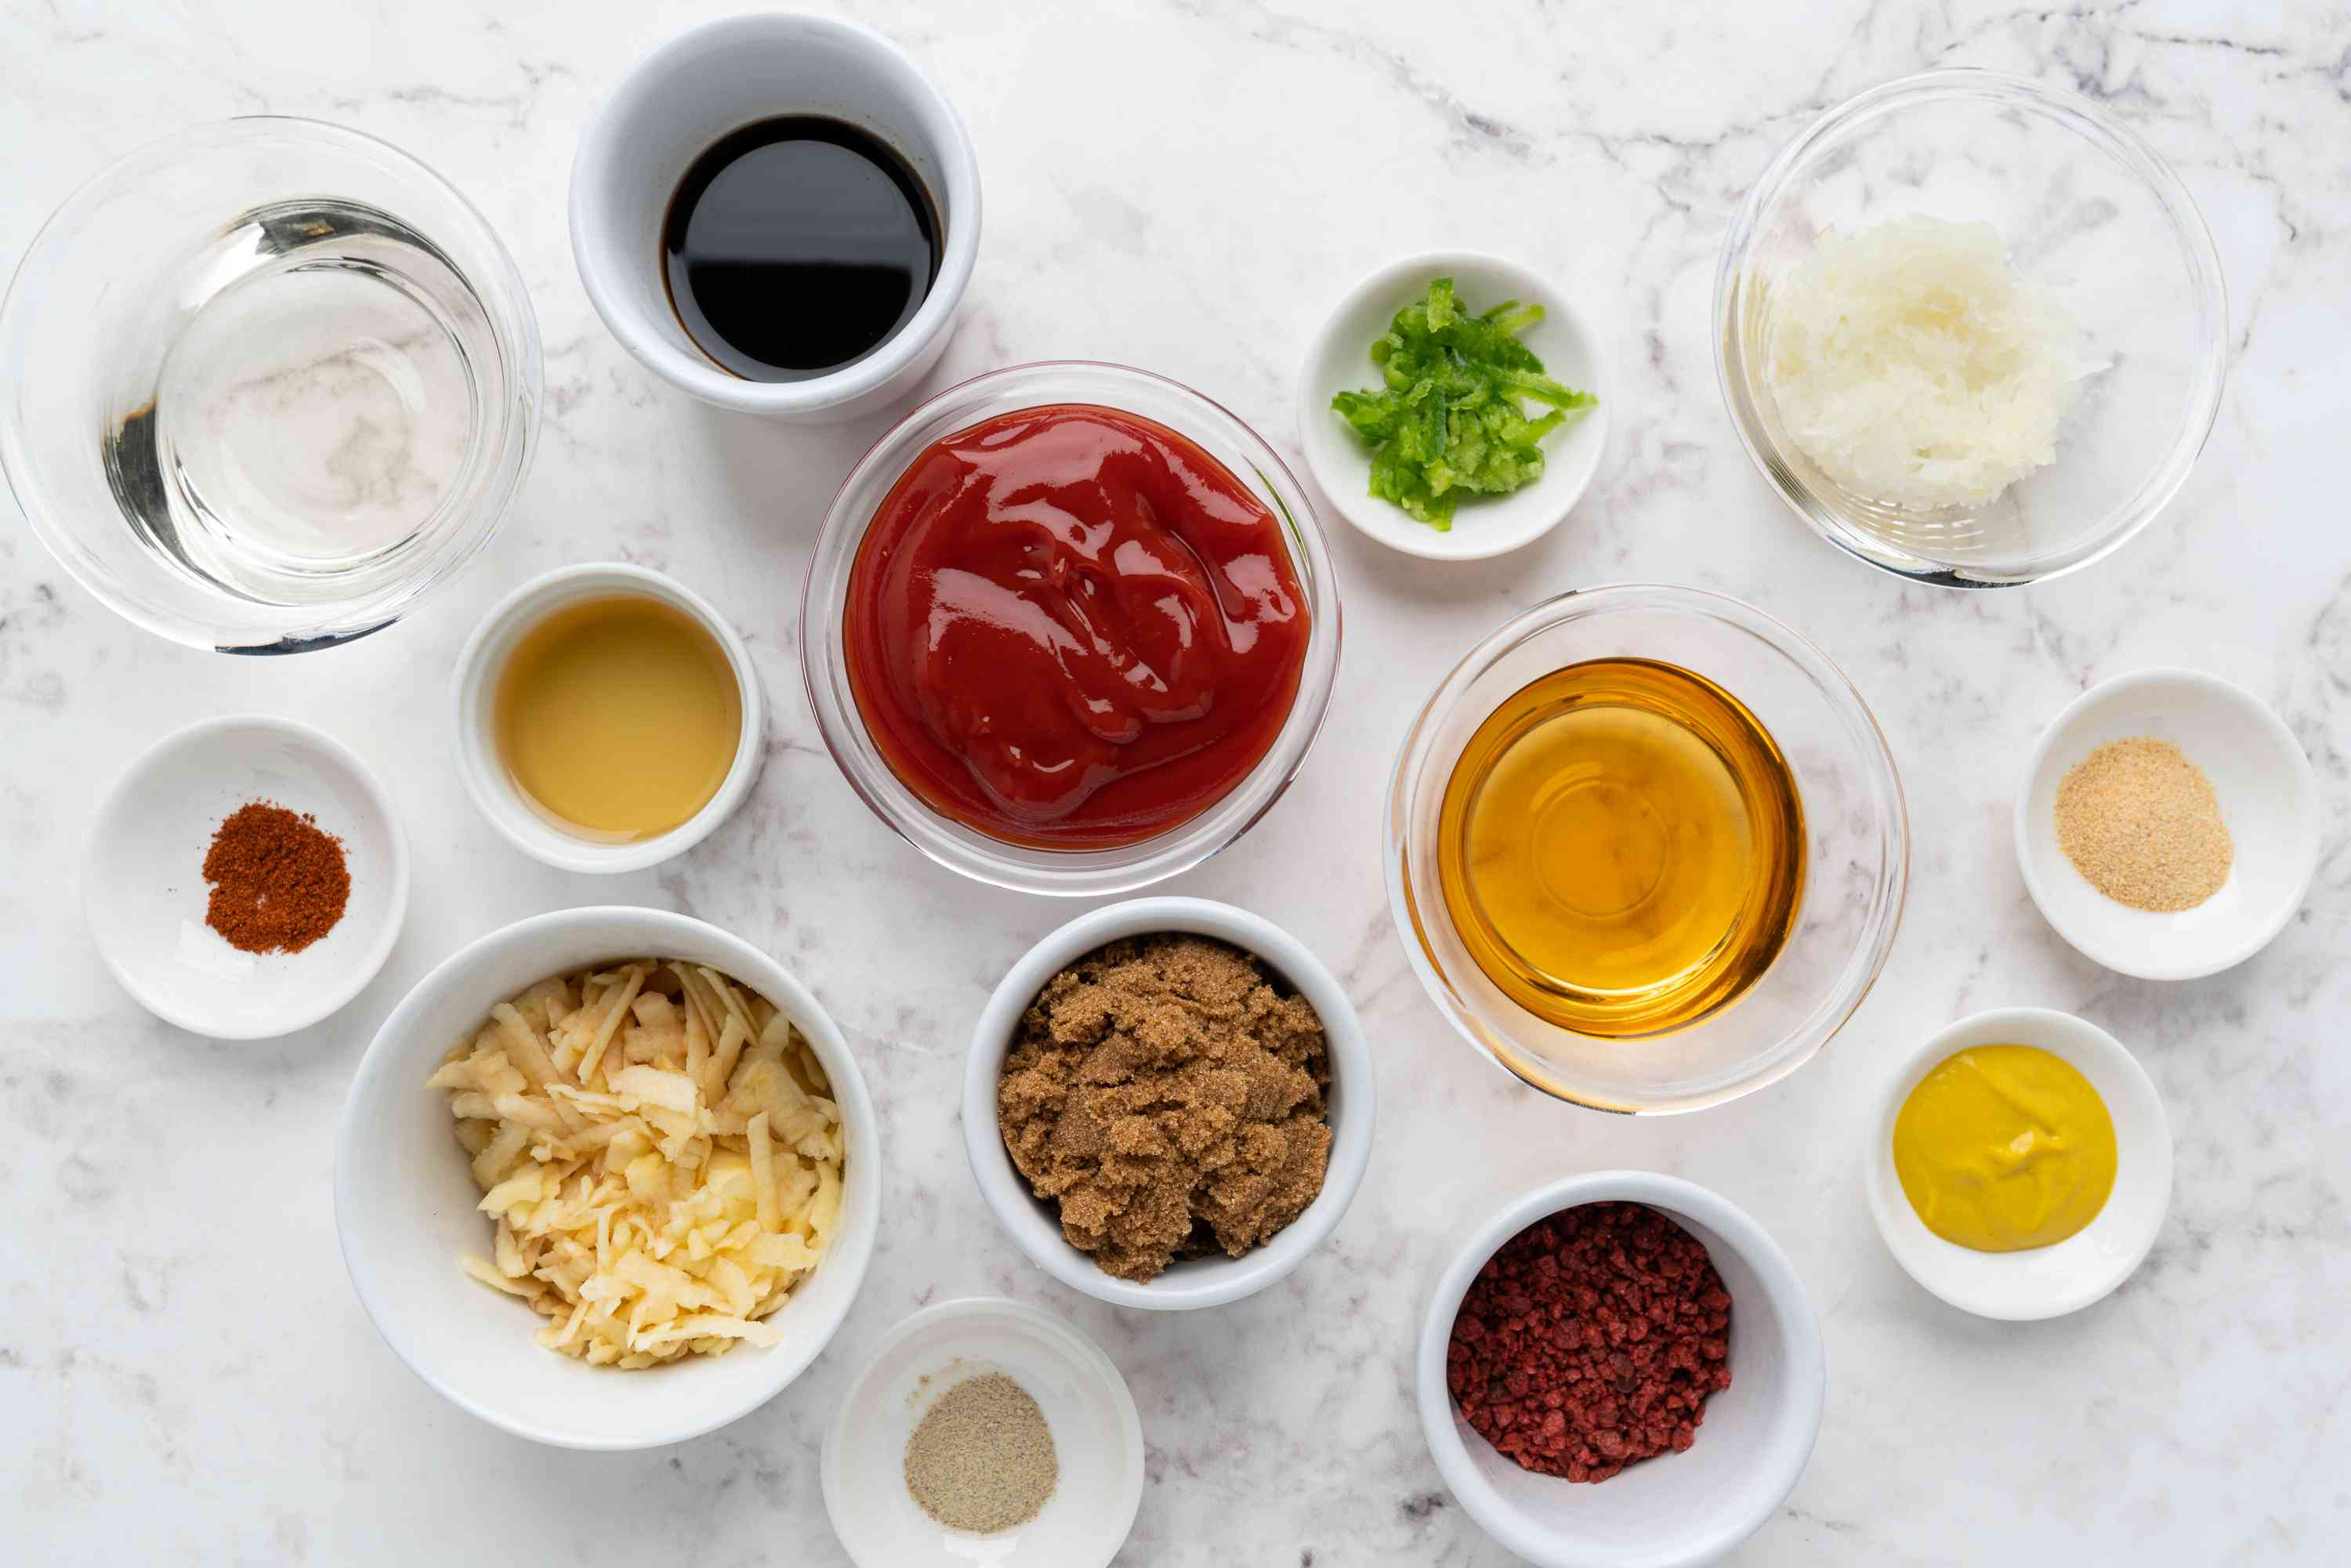 Apple City Barbecue Sauce ingredients